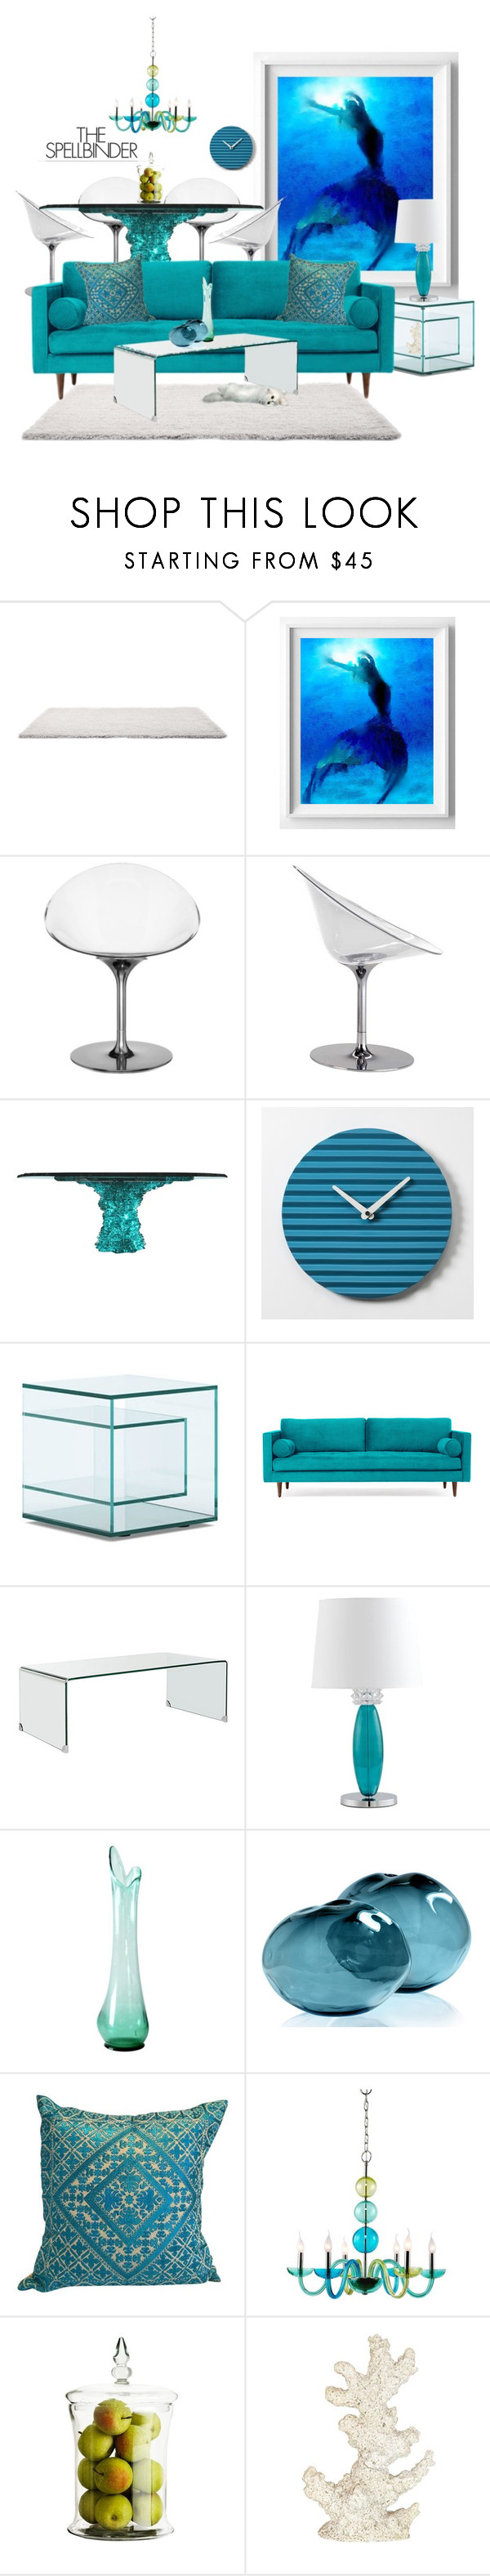 """""""36-Mermaid Tales Contest"""" by neicy-i ❤ liked on Polyvore featuring interior, interiors, interior design, home, home decor, interior decorating, Kartell, Joybird, Cyan Design and Gwyneth Shoes"""